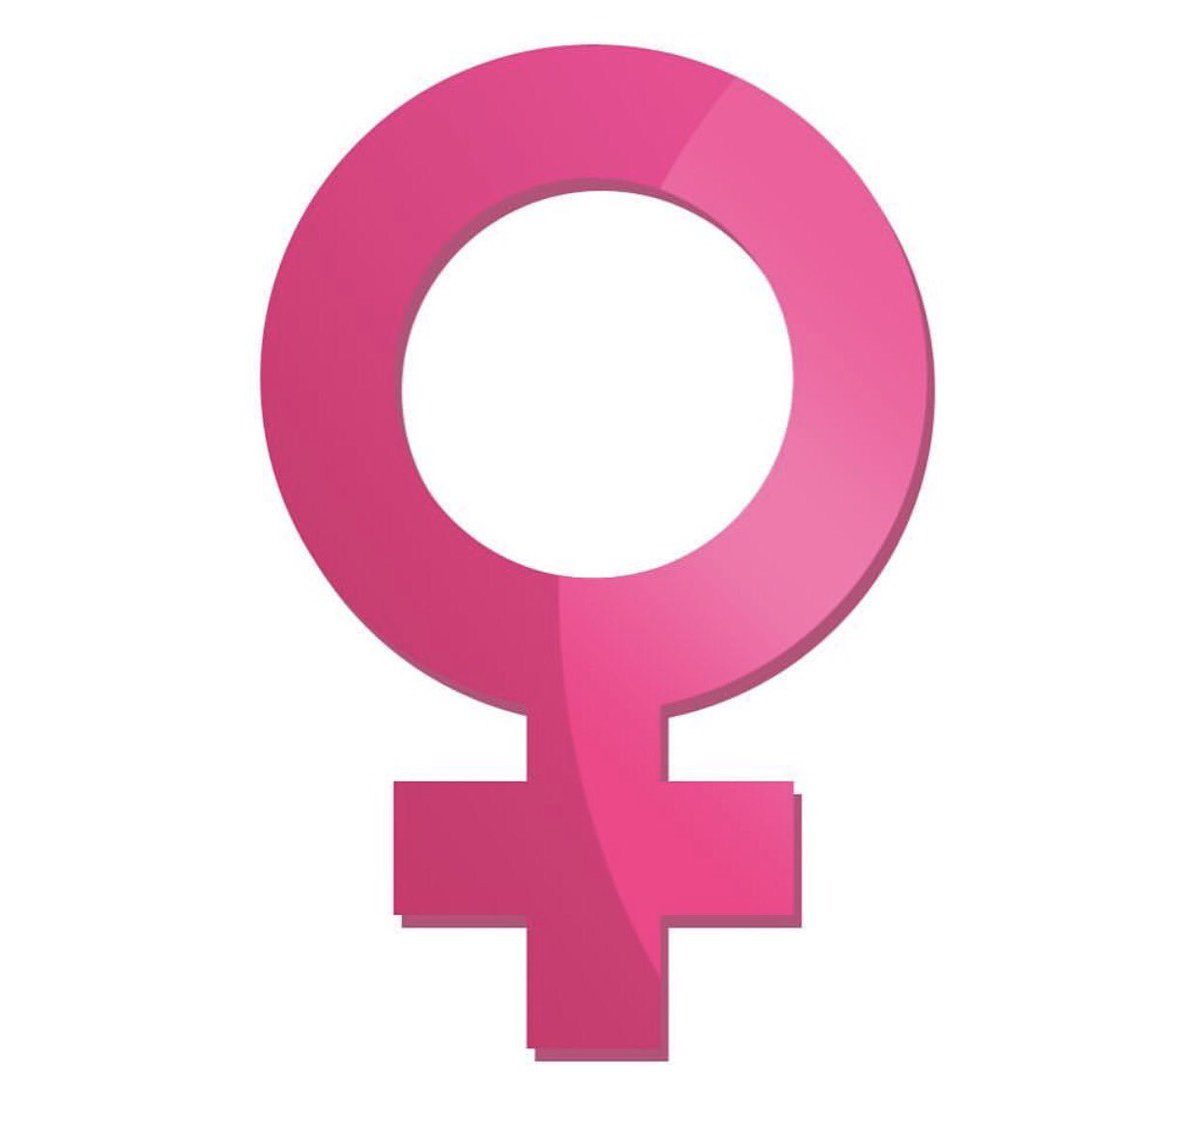 Happy #WomensEqualityDay! #women #equality #ImproveSociety #SocialActivism<br>http://pic.twitter.com/GiE3UztdLo